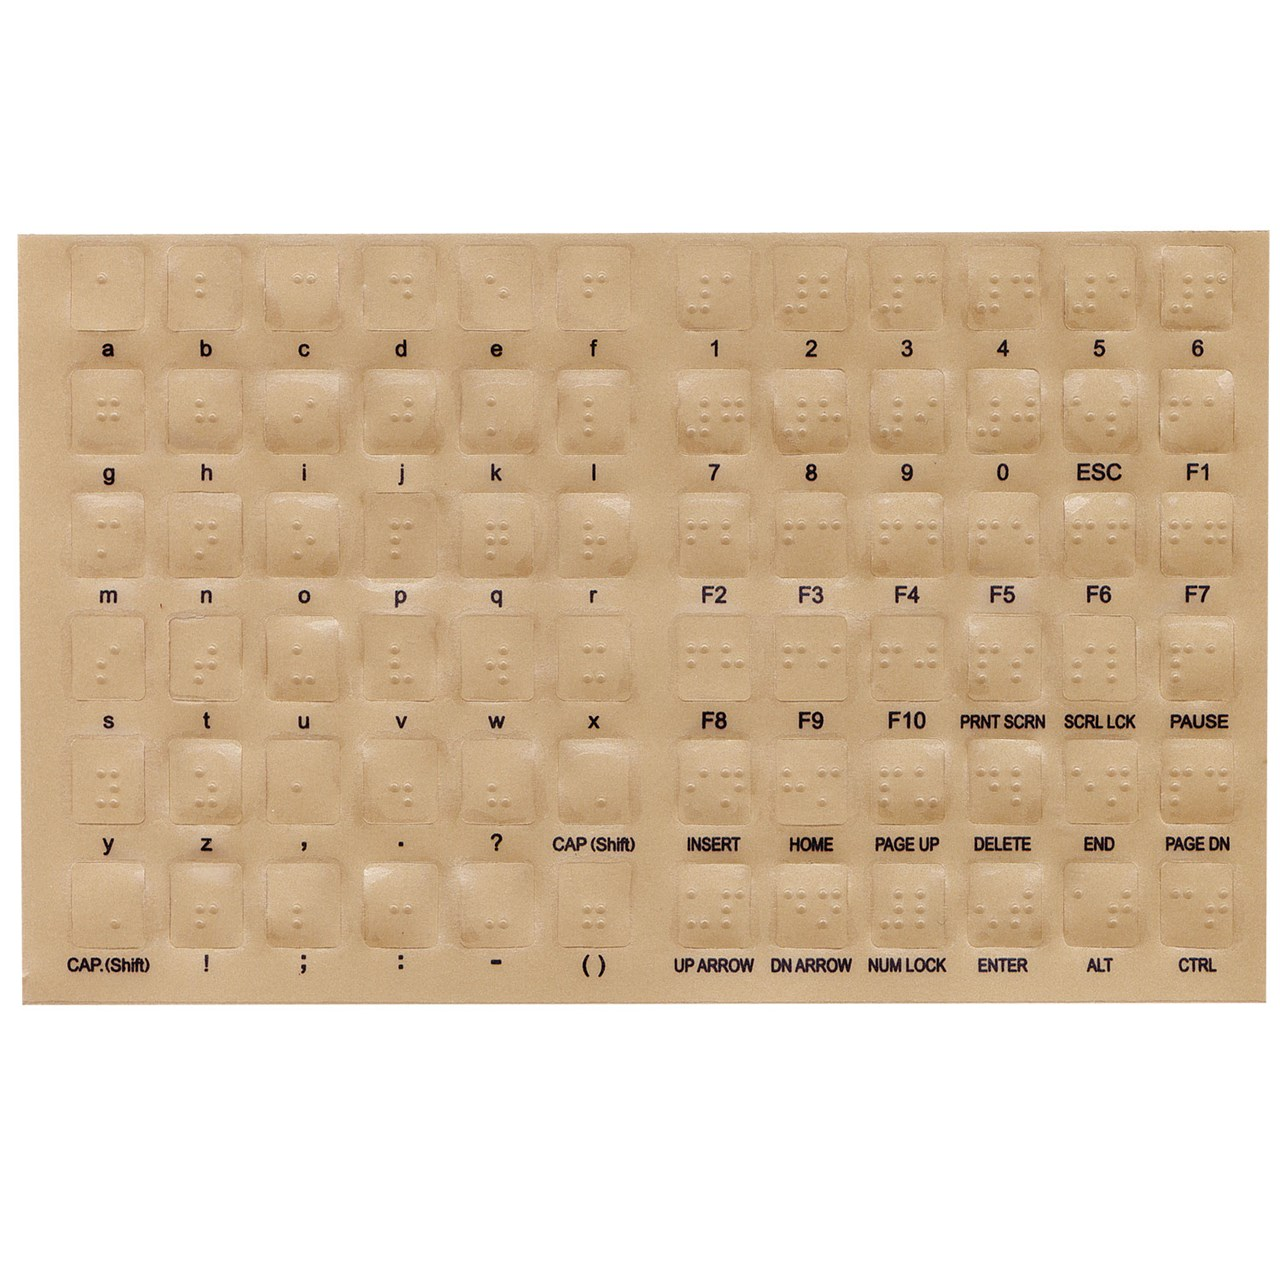 maxiaids braille overlays for computer keyboards